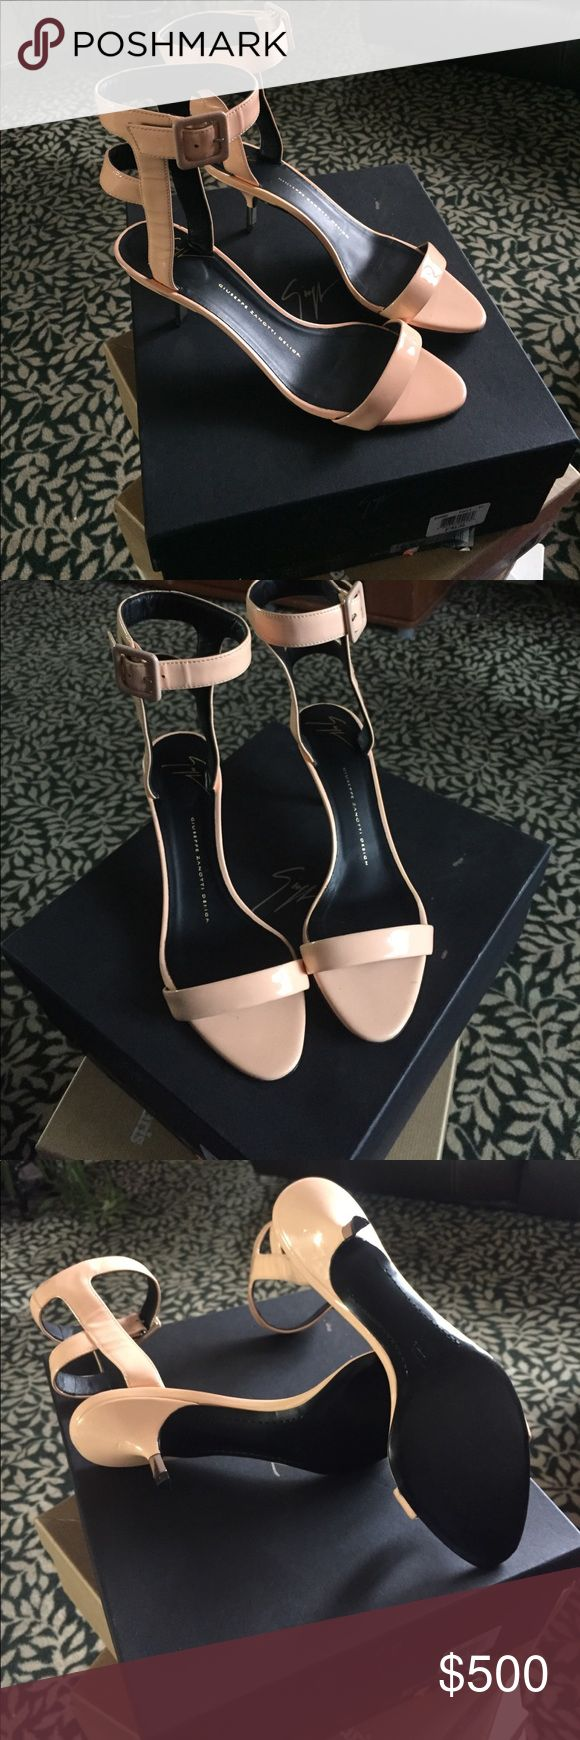 "Giuseppe heels Name of the shoes- ""COLINE 55 SANDAL VERNICE DOLLY"" BRAND NEW, NEVER WORN. Amazing condition. Very stylish & classy. Great for the summer & Super comfortable. Comes with box & papers. We do same day shipping! Size is 8.5 for anymore questions please feel free to ask! Thank you! 😄 Giuseppe Zanotti Shoes Heels"